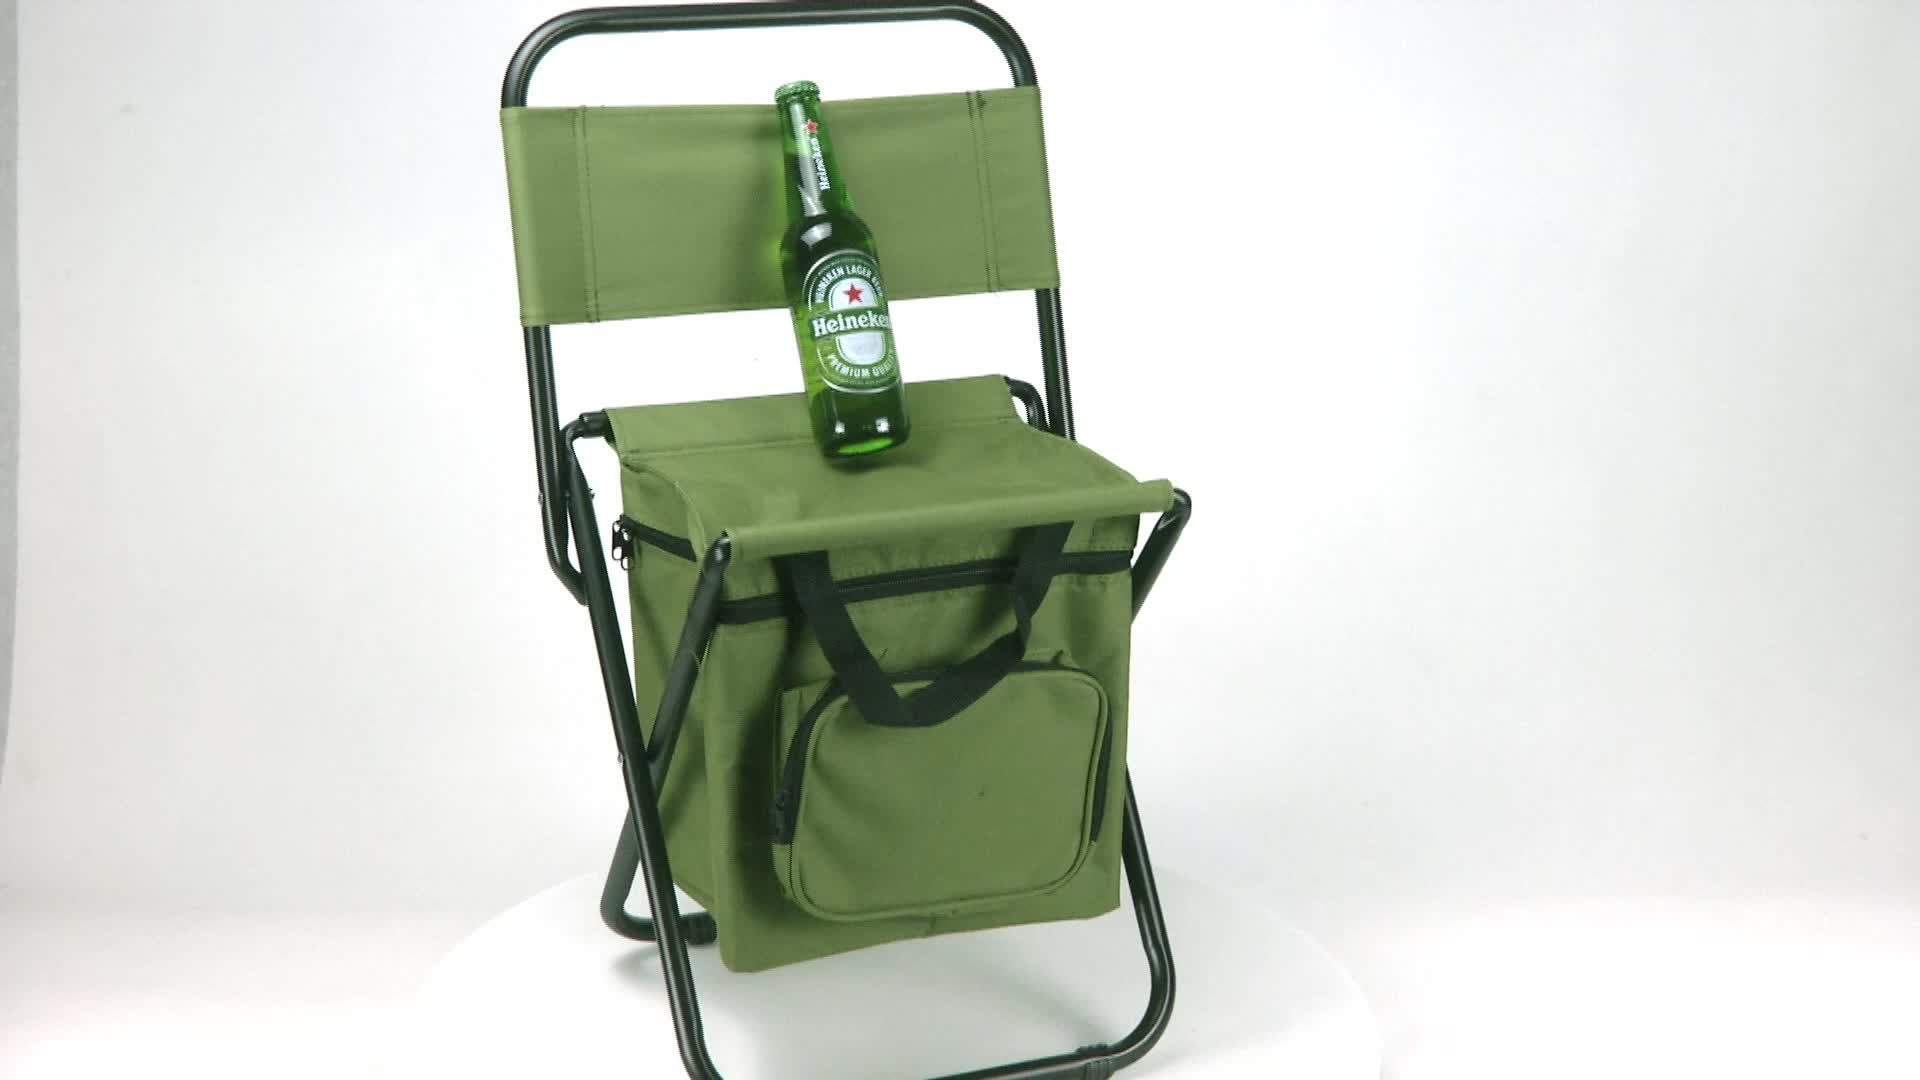 Backpack Beach Chair With Cooler Outdoor Foldable Backpack Beach Chair With Cooler Bag